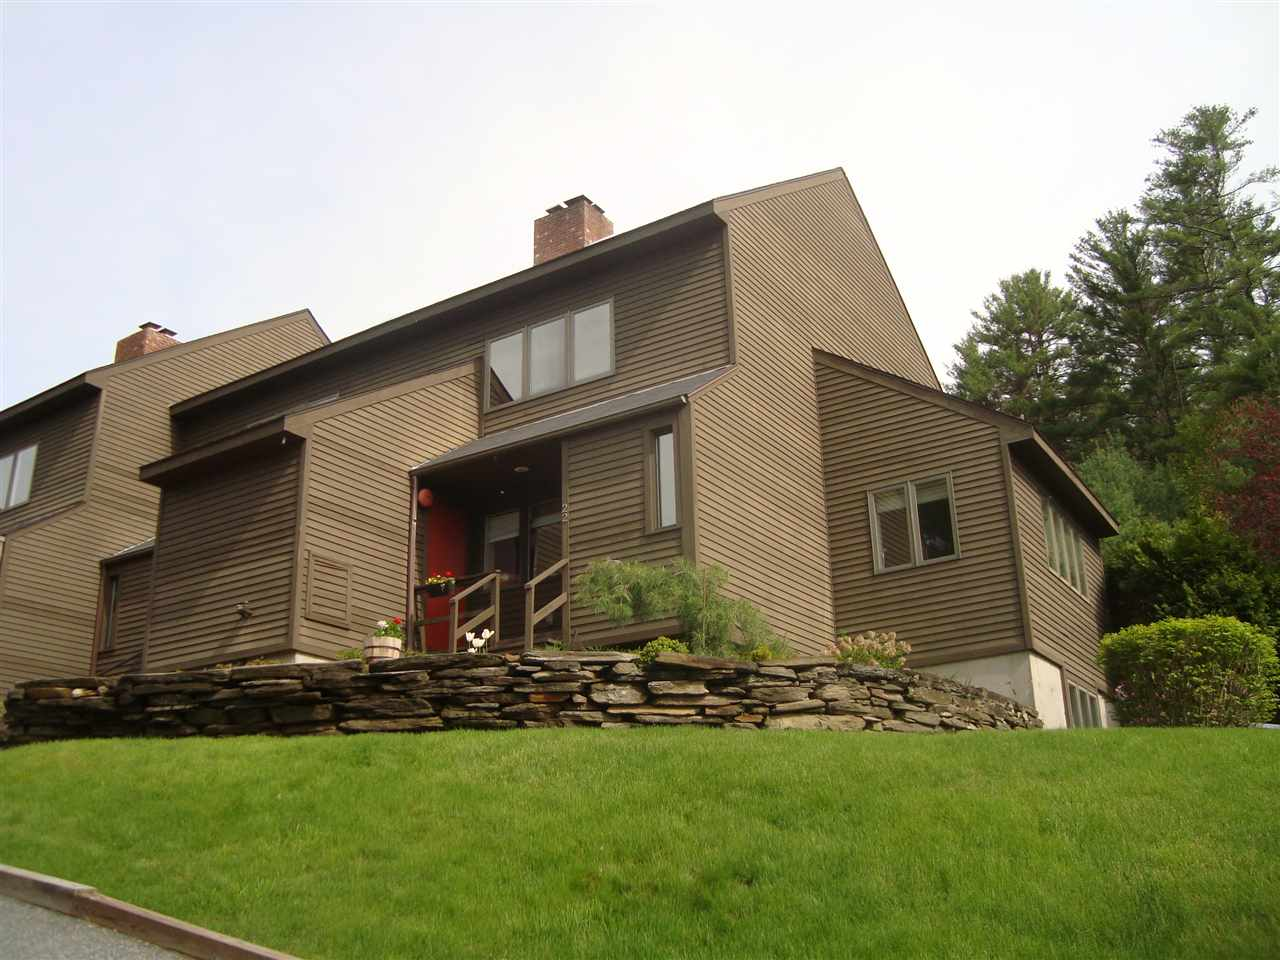 22 College Hill, Hanover, NH 03755